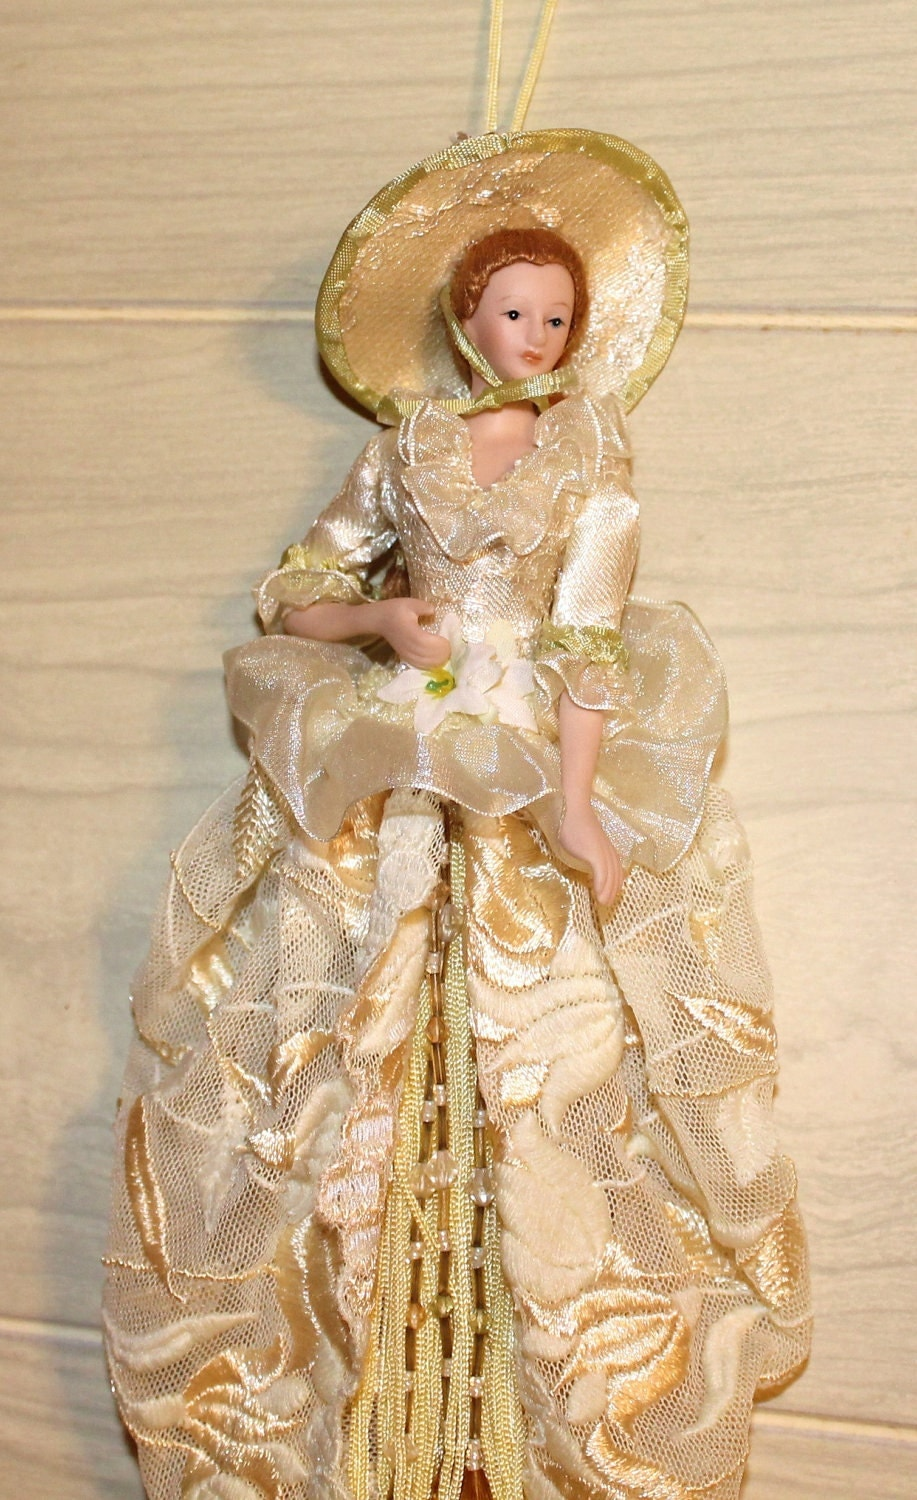 Unique Vintage Hanging Porcelain Doll Collectible Home